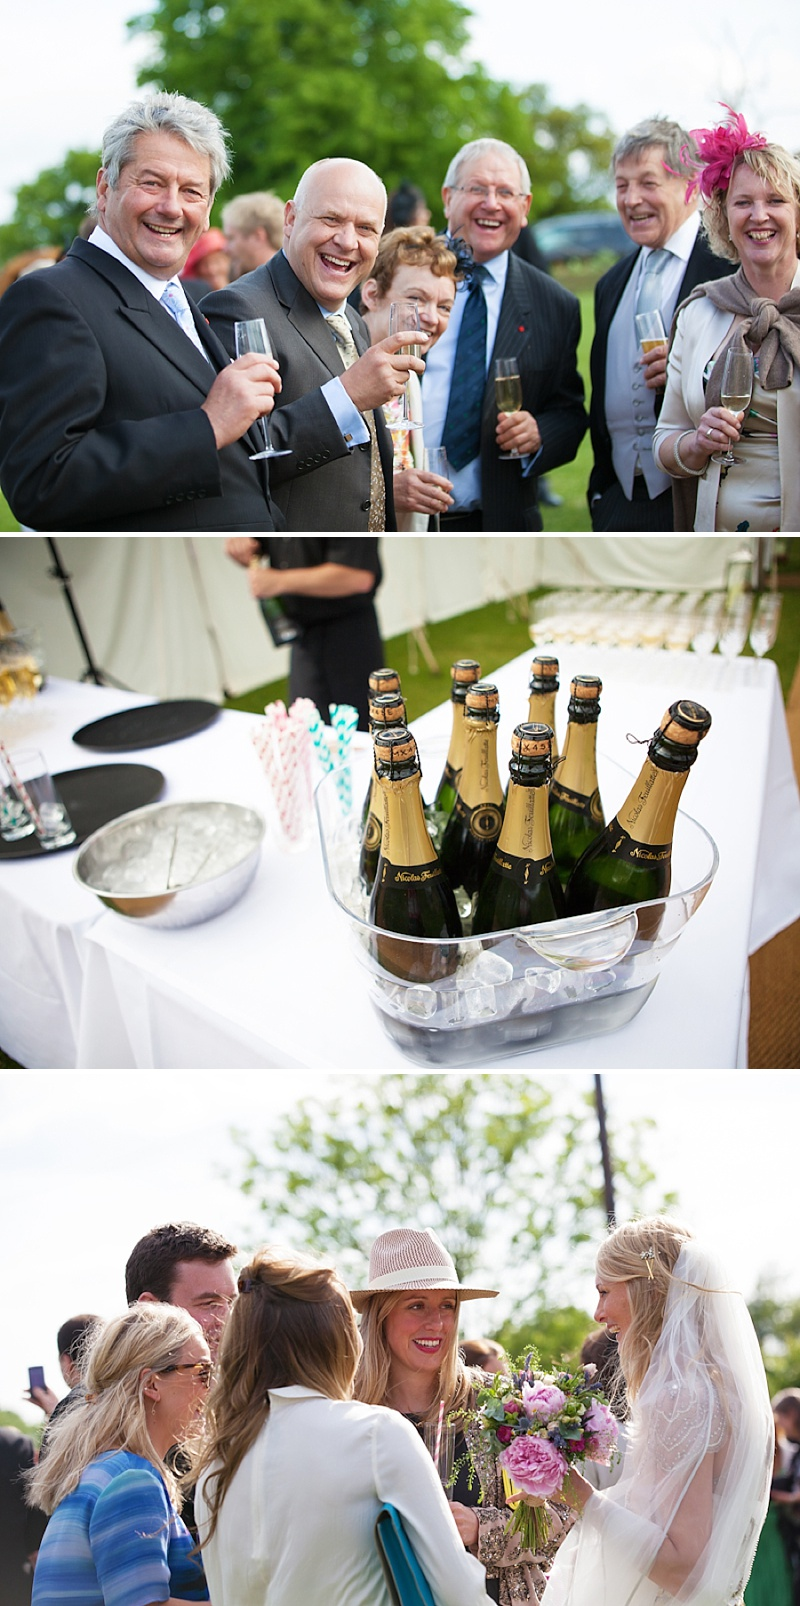 Summer Garden Party Wedding In Hertfordshire Bride In Jenny Packham Eden Gown Images by Annamarie Stepney 0011 Champagne In The Sunshine.